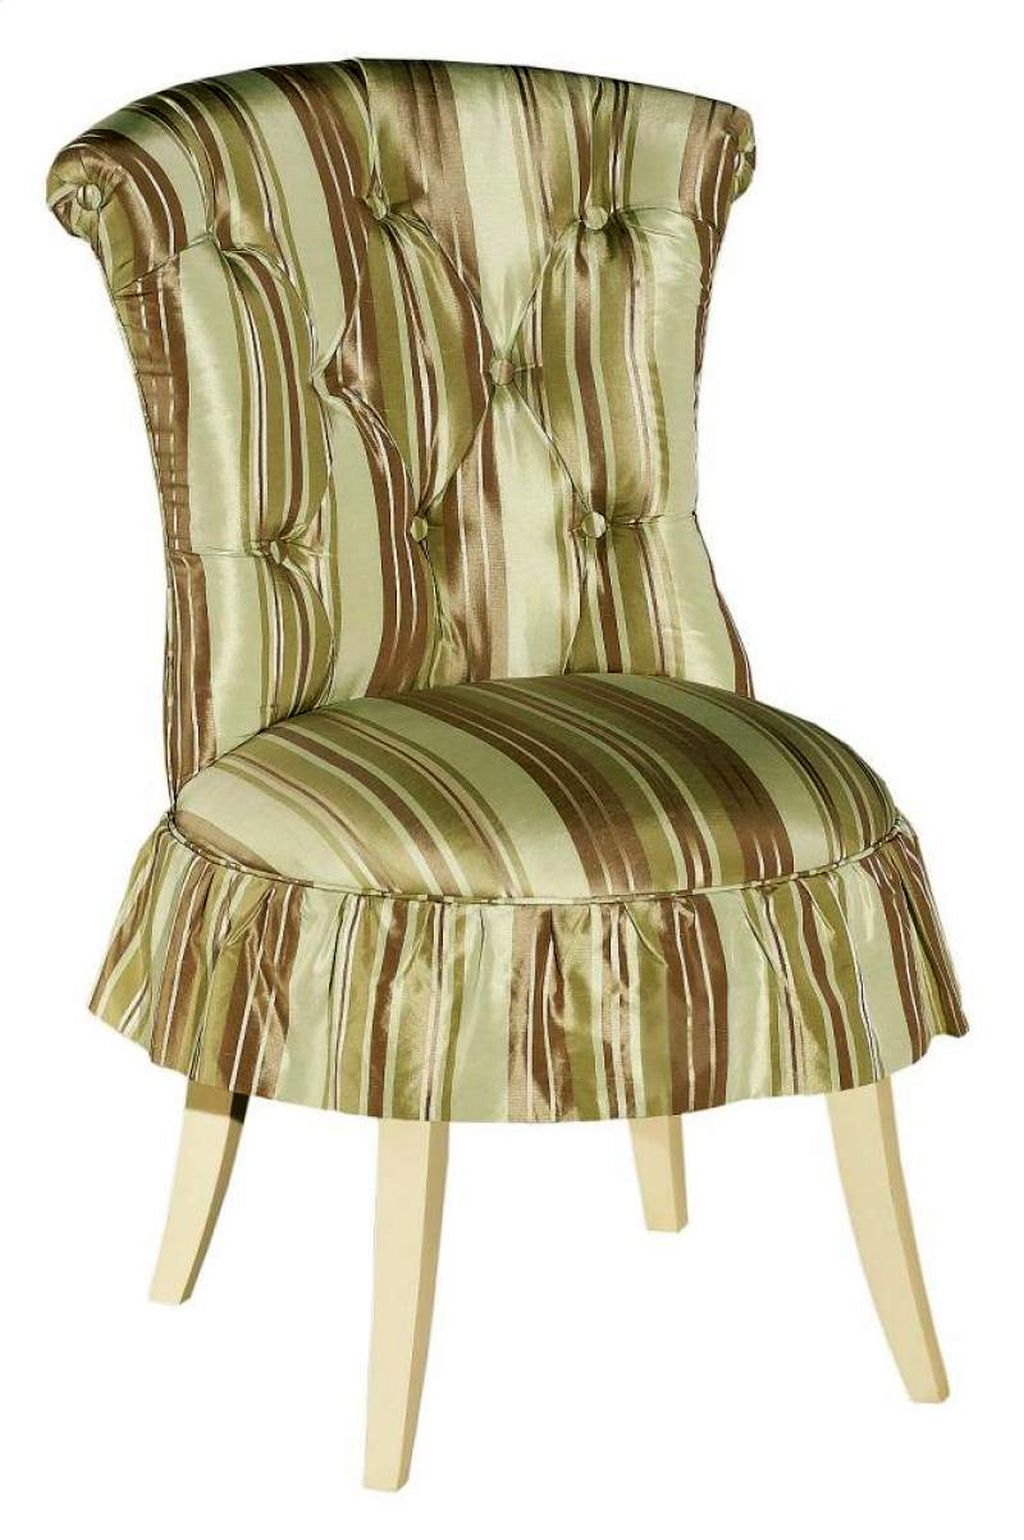 bedroom chair with skirt folding outdoor chairs canada cute hickory vanity